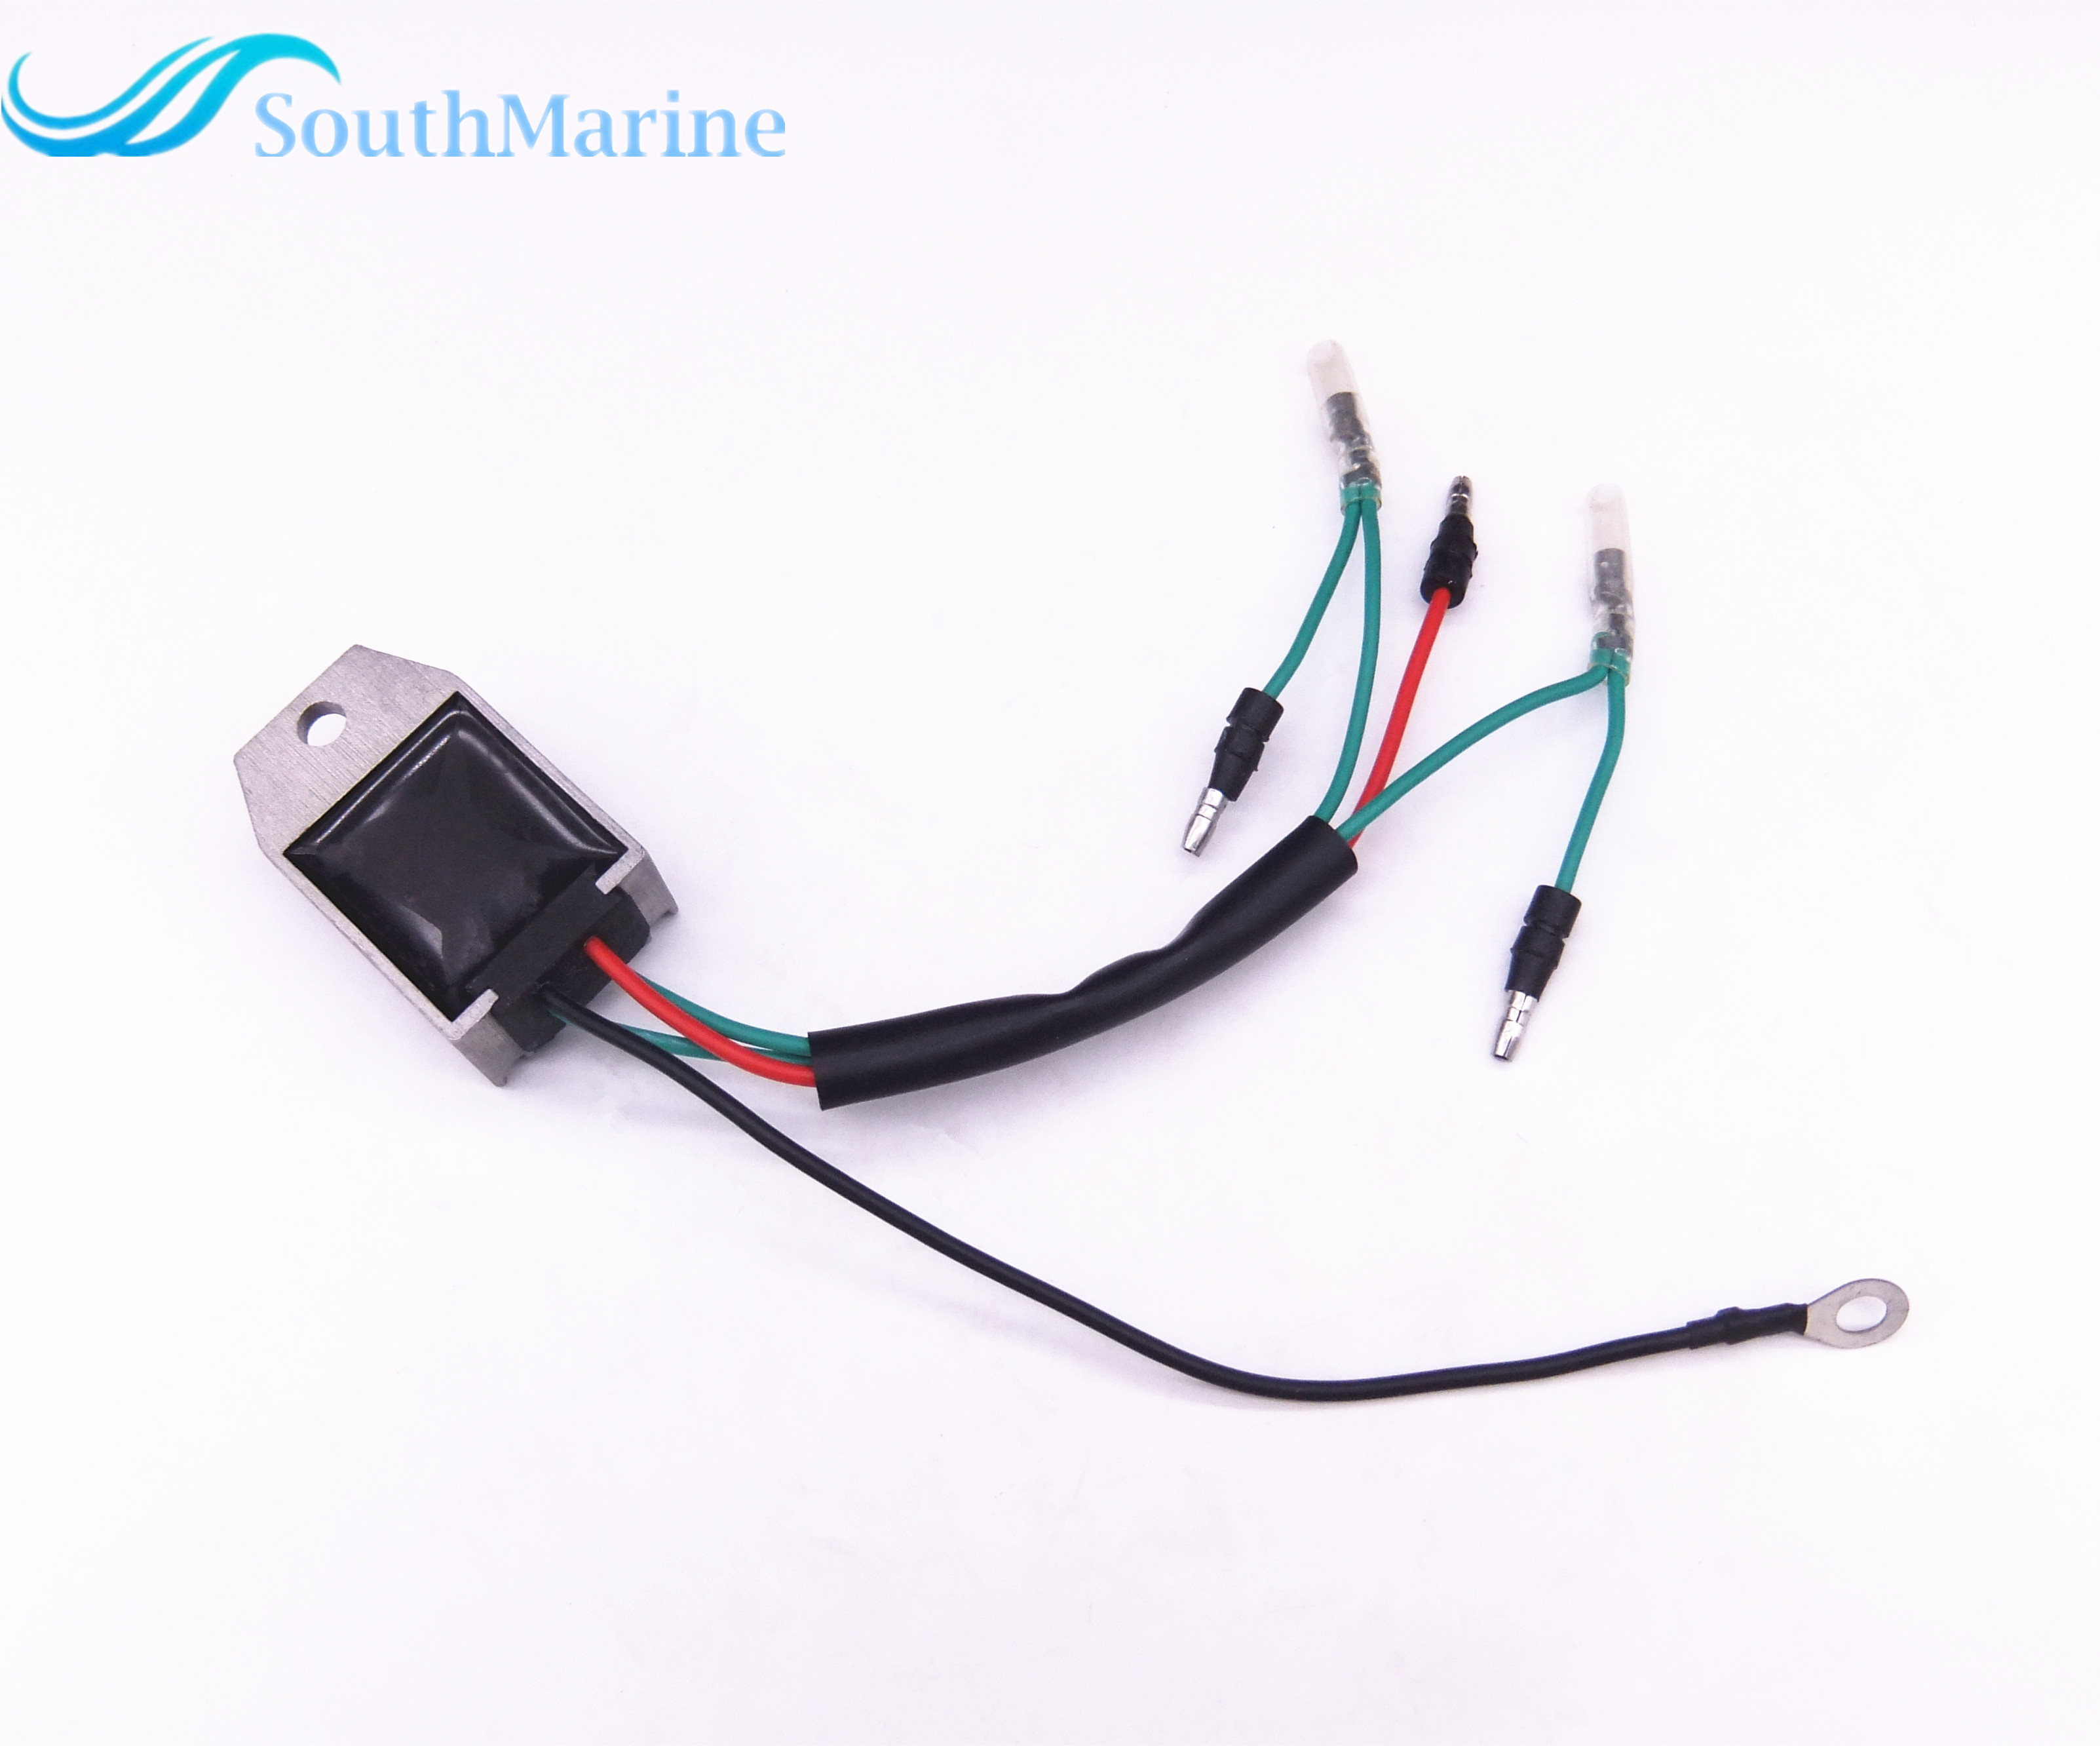 small resolution of boat motor rectifier regulator assy 6j8 81960 00 for yamaha outboard motors in boat engine from automobiles motorcycles on aliexpress com alibaba